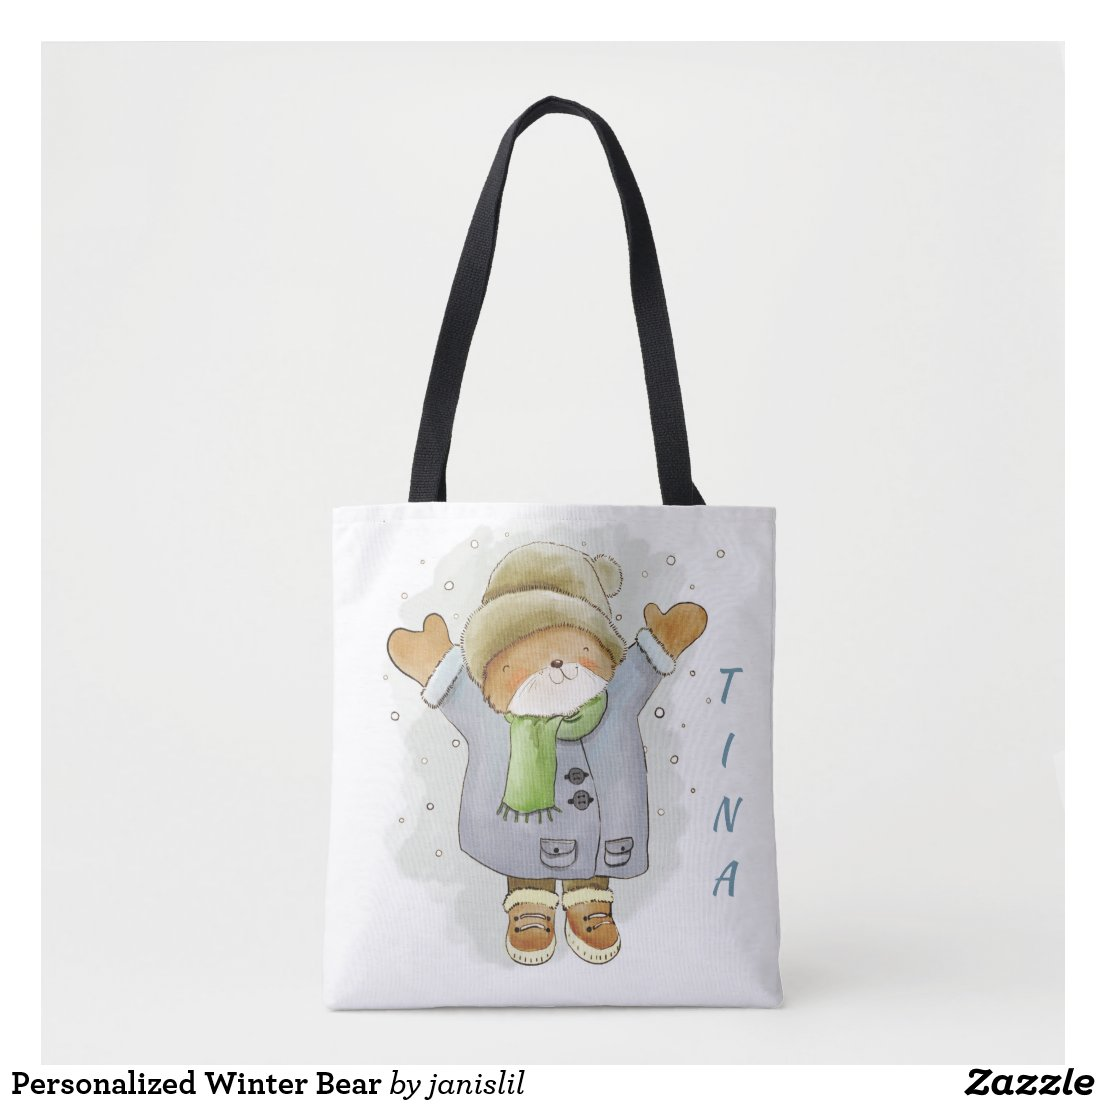 Personalized Winter Bear Tote Bag